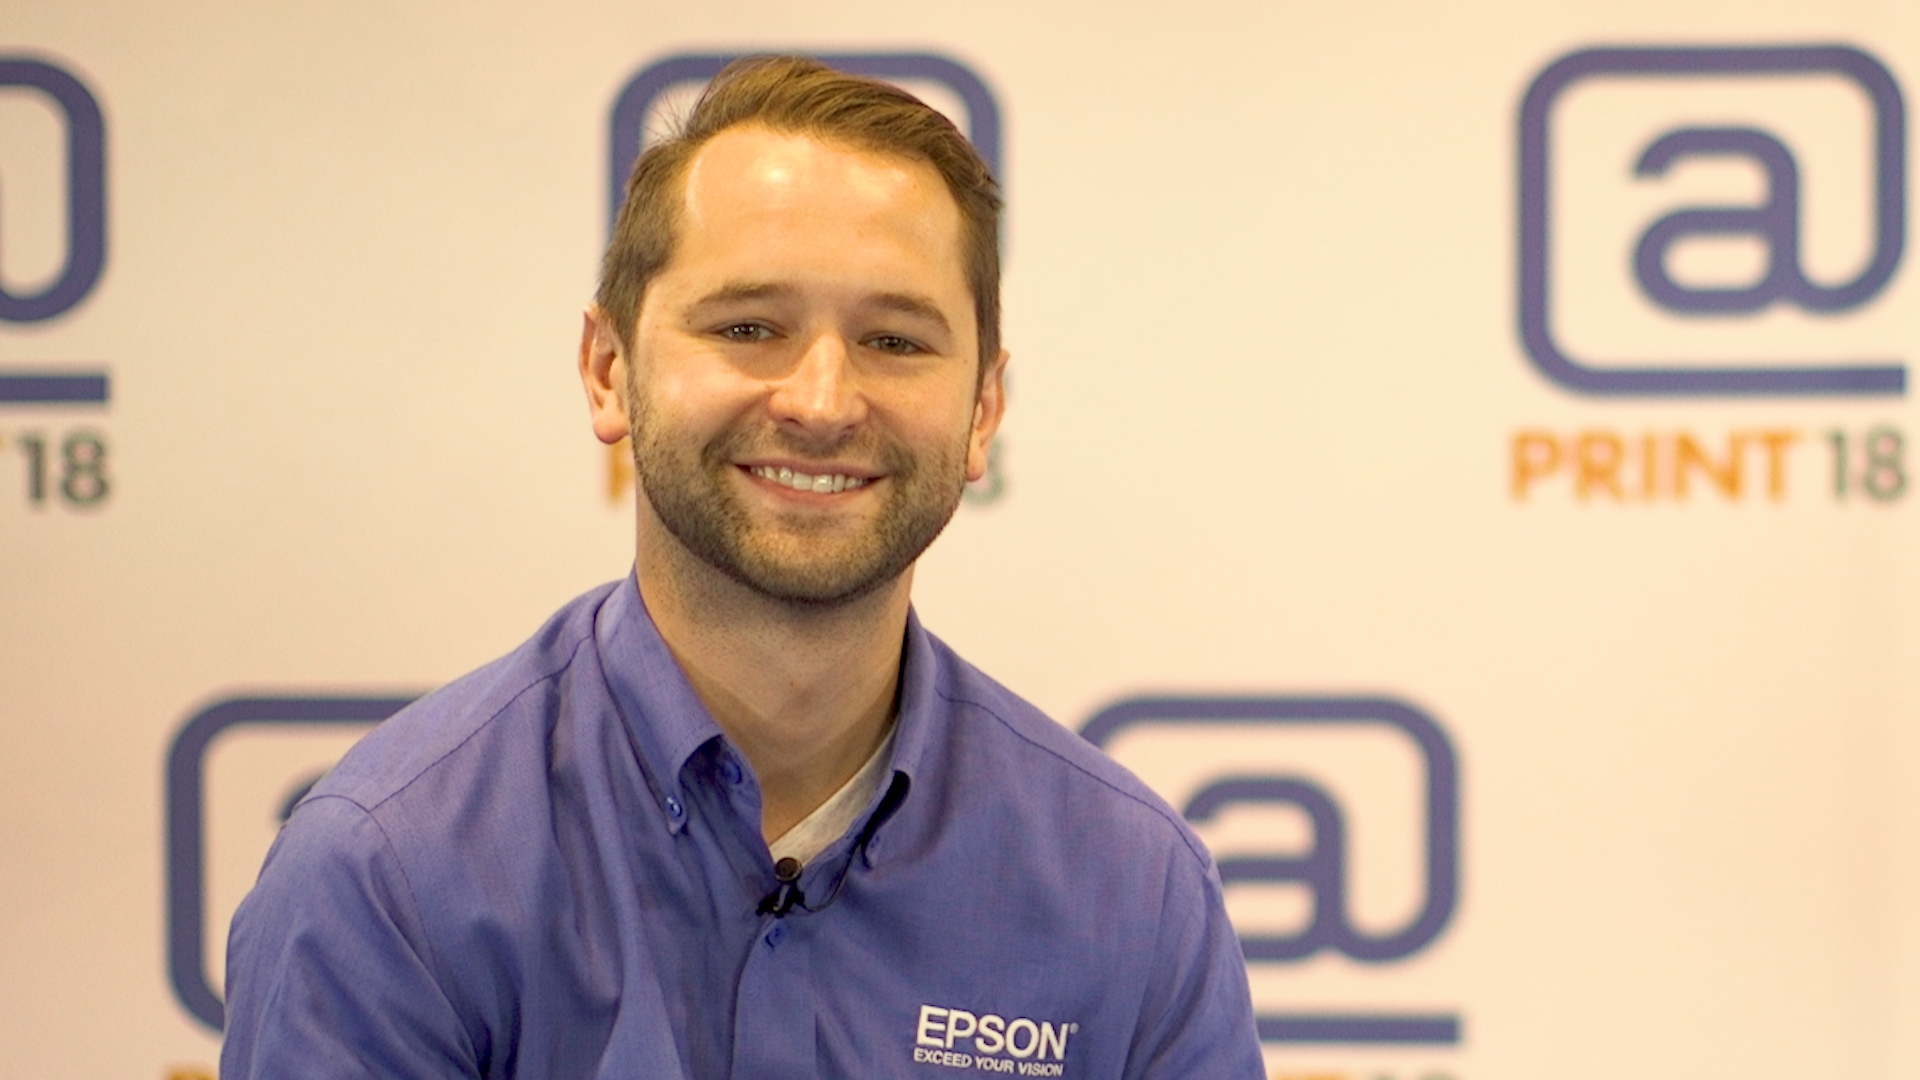 Epson Introduces New SureColor Technical Printer